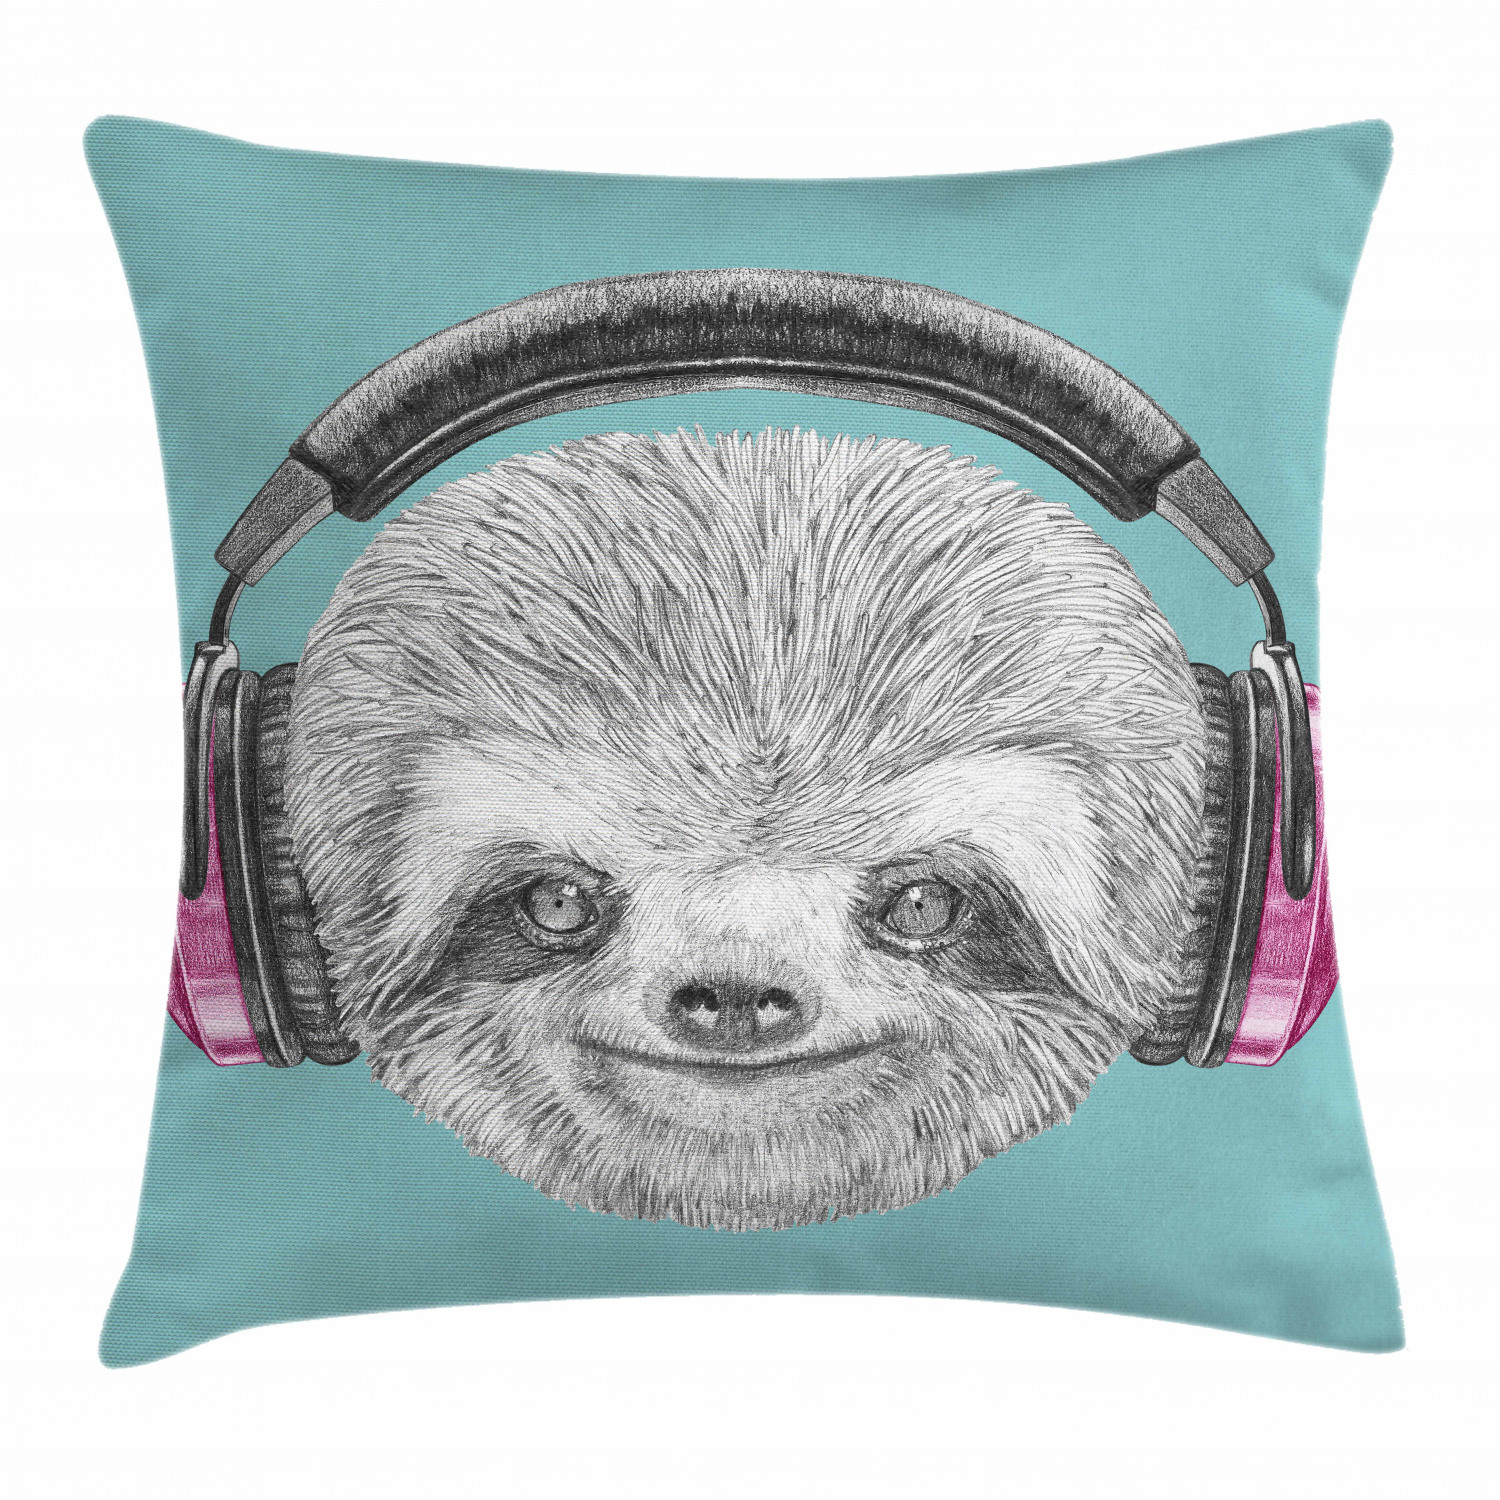 sloth throw pillow cushion cover dj sloth portrait with headphones funny modern character cool cute smiling decorative square accent pillow case 20